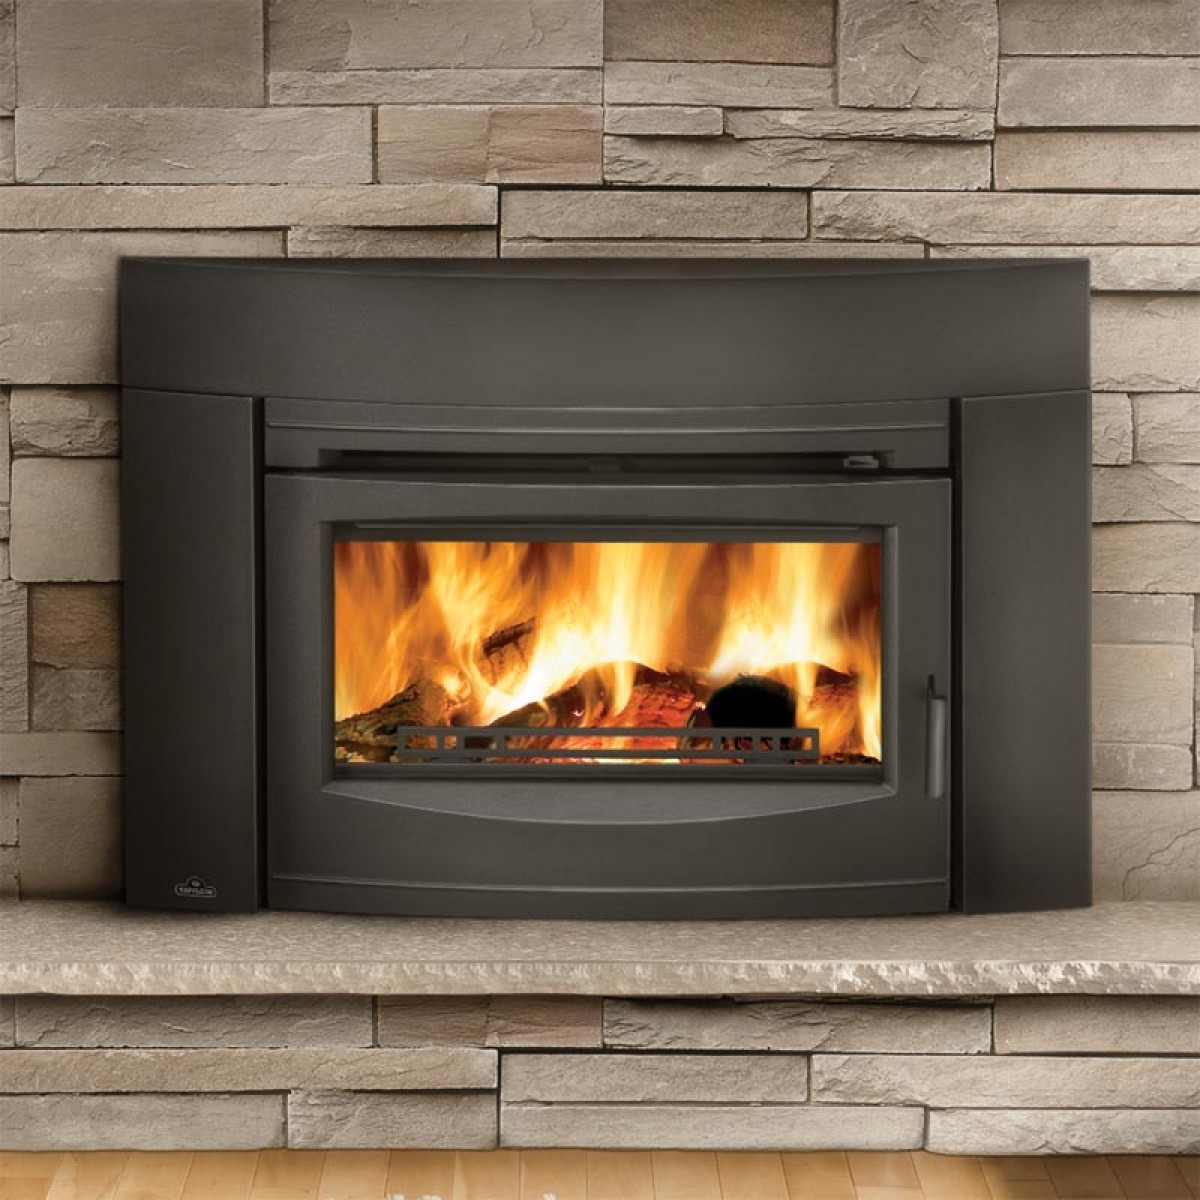 Napoleon Epi3 Wood Burning Fireplace Insert W Cast Iron Surround And Door At Ibuyfireplaces